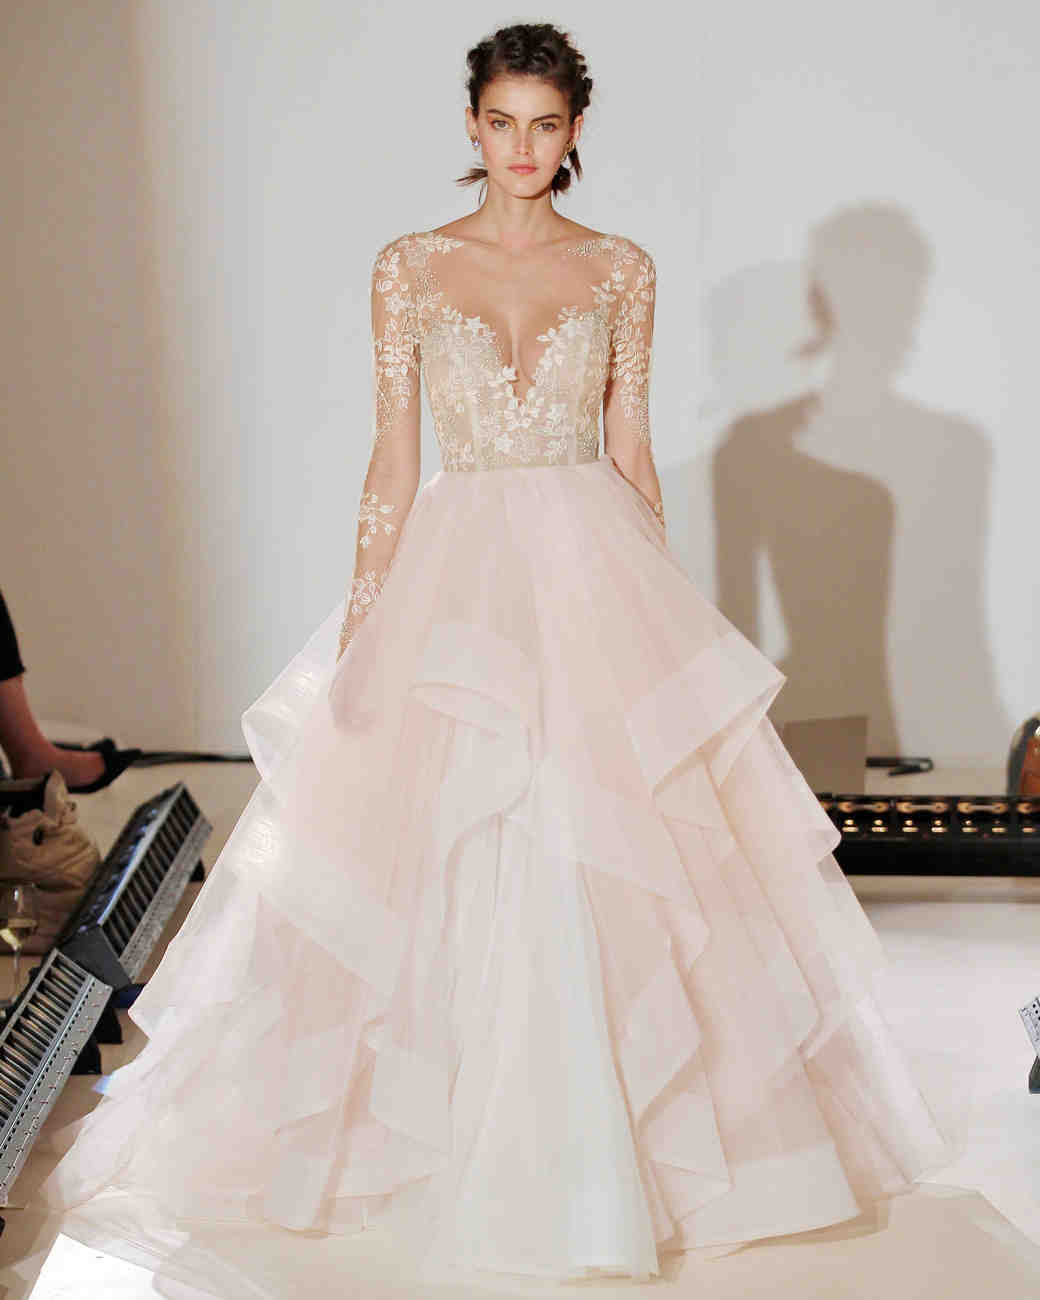 hayley paige wedding dresses spring hayley paige wedding dresses Hayley Paige Spring Wedding Dress Collection 1 of 13